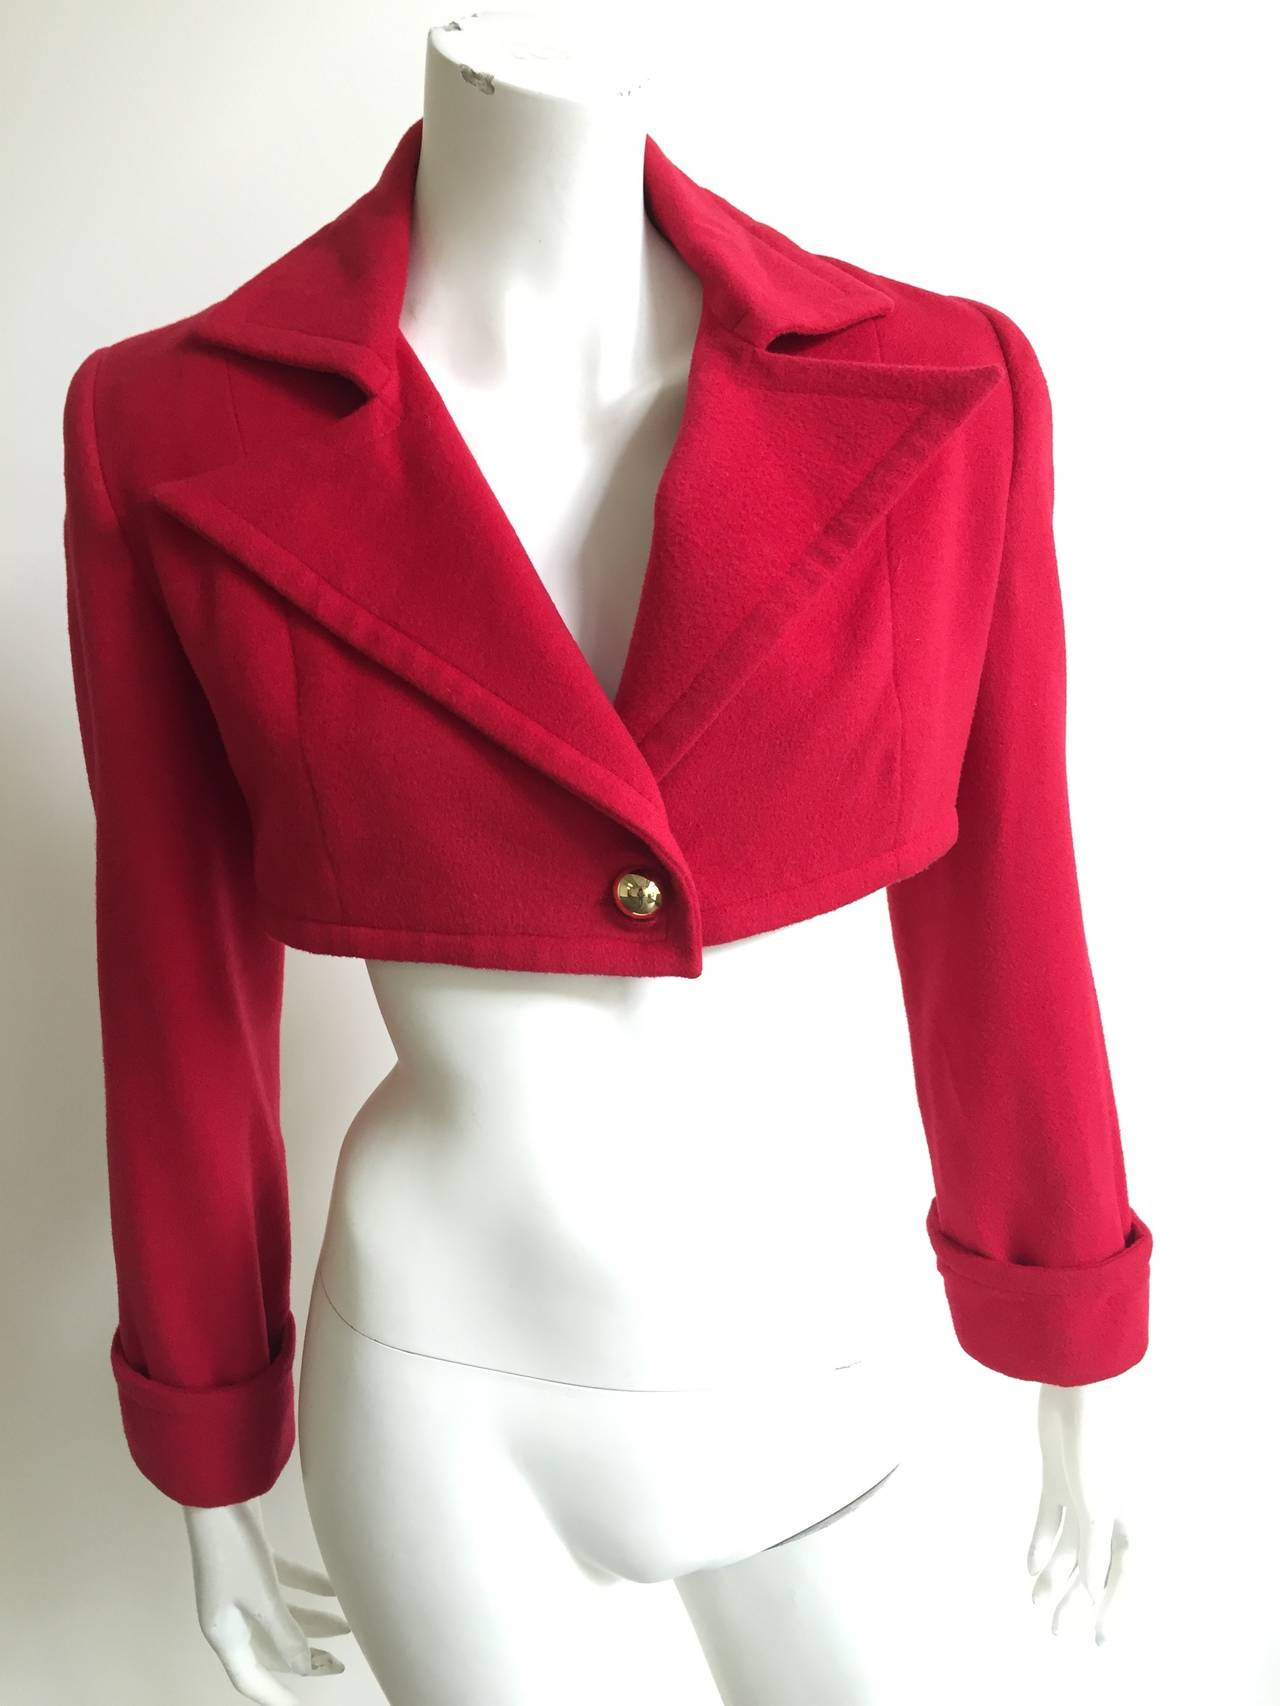 Patrick Kelly Paris 1988 red cropped jacket size 6. 9